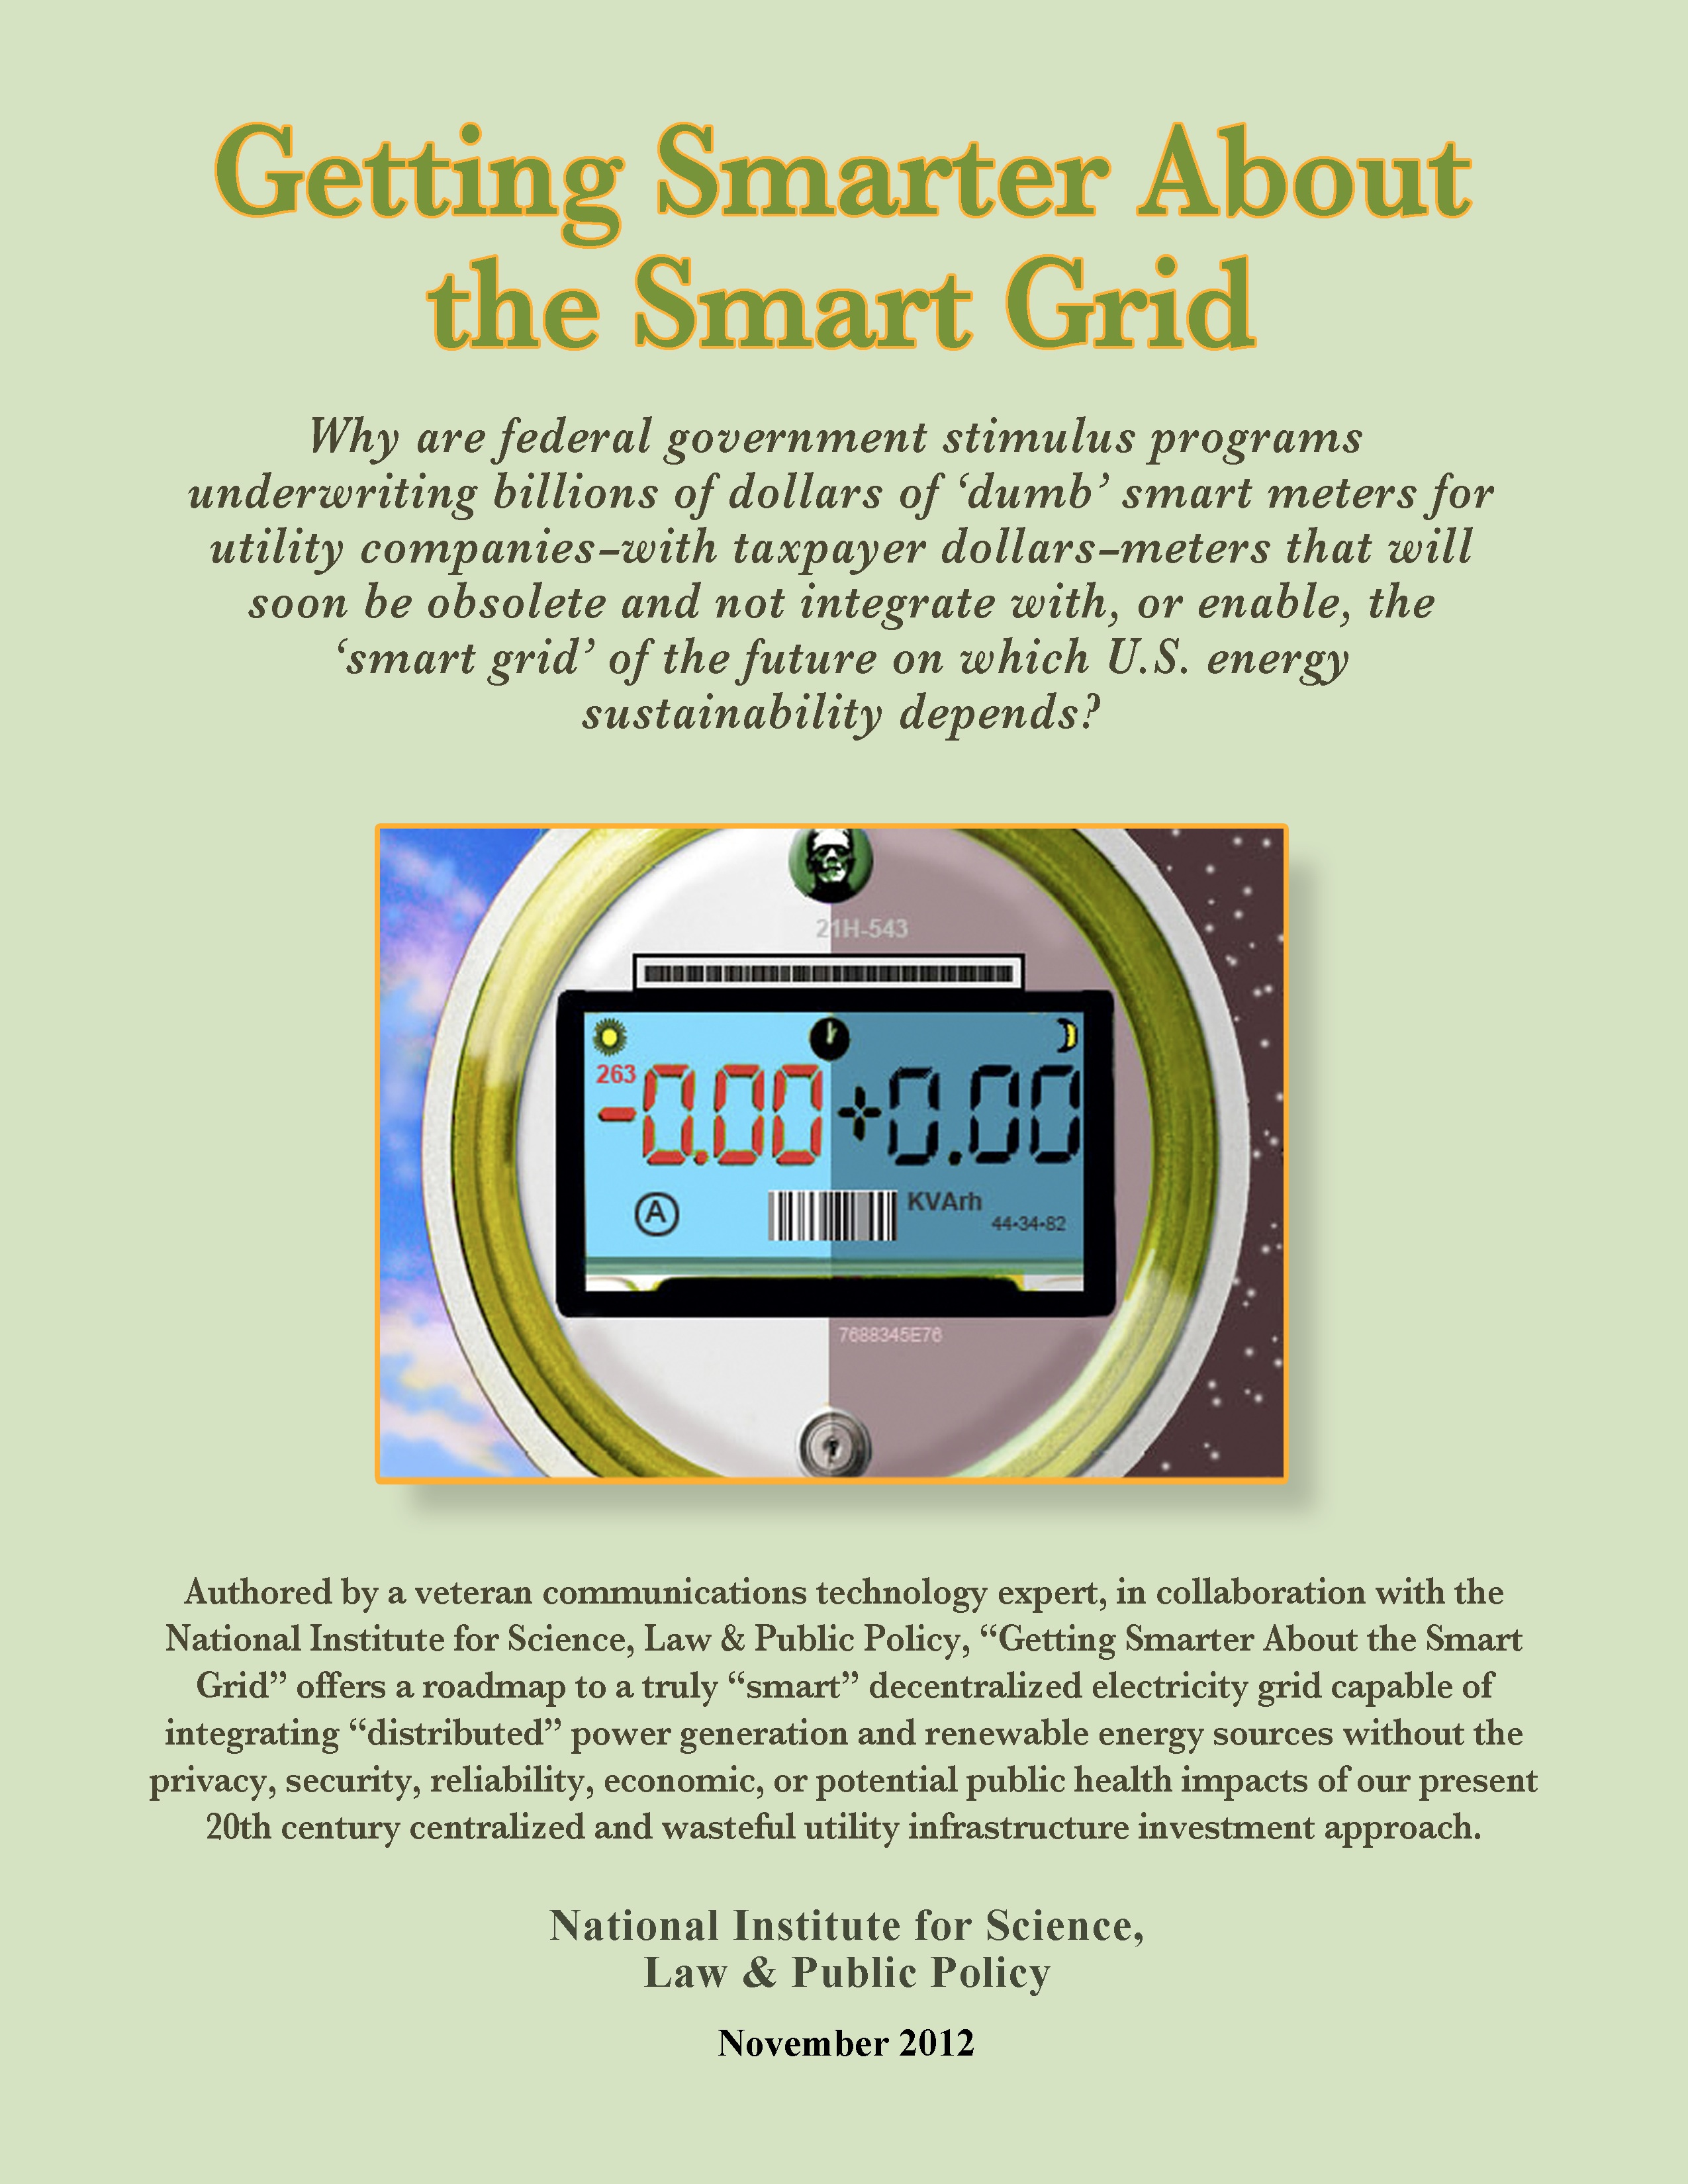 thesis paper on smart grid Modeling and analysis of a pv grid-tied smart inverter's support functions a thesis presented to the faculty of california state university.